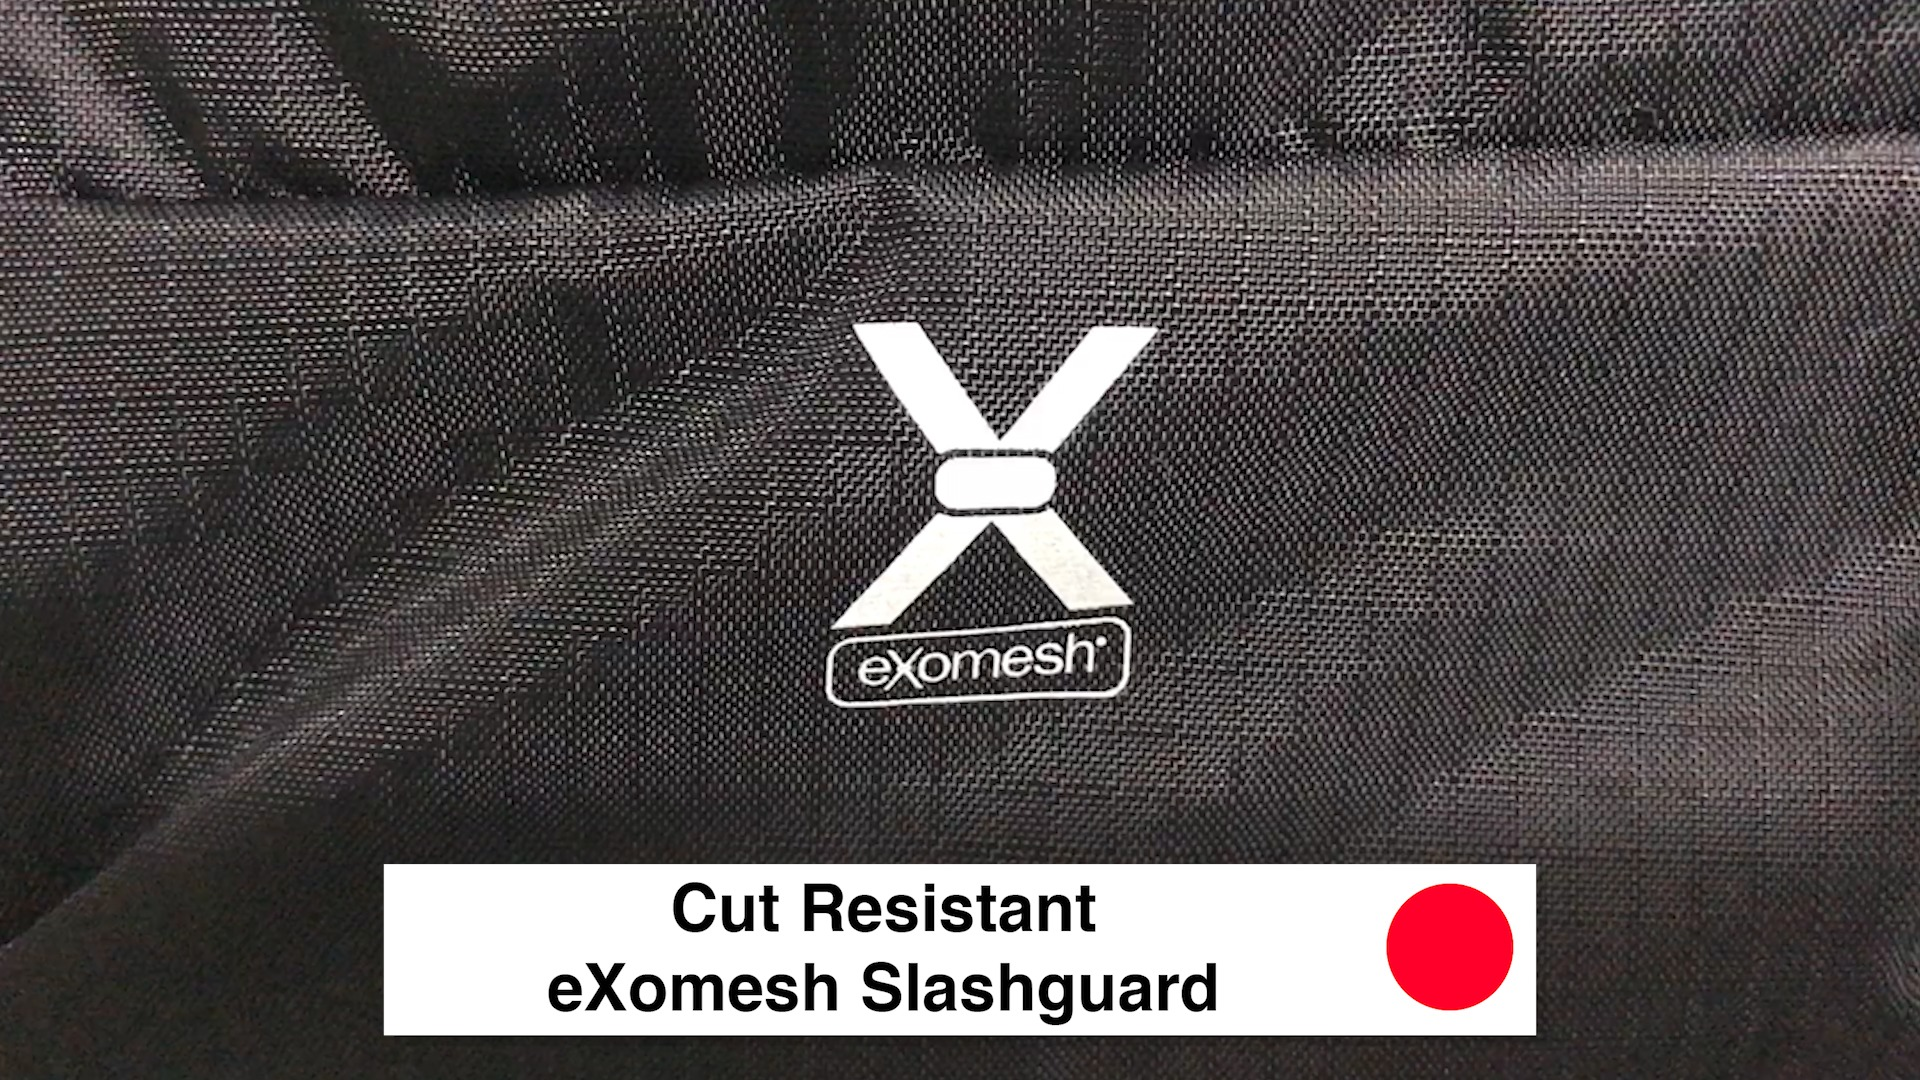 Cut Resistant eXomesh Slashguard - Pacsafe Venturesafe X30 Travel Pack - Black Anti Theft Backpack